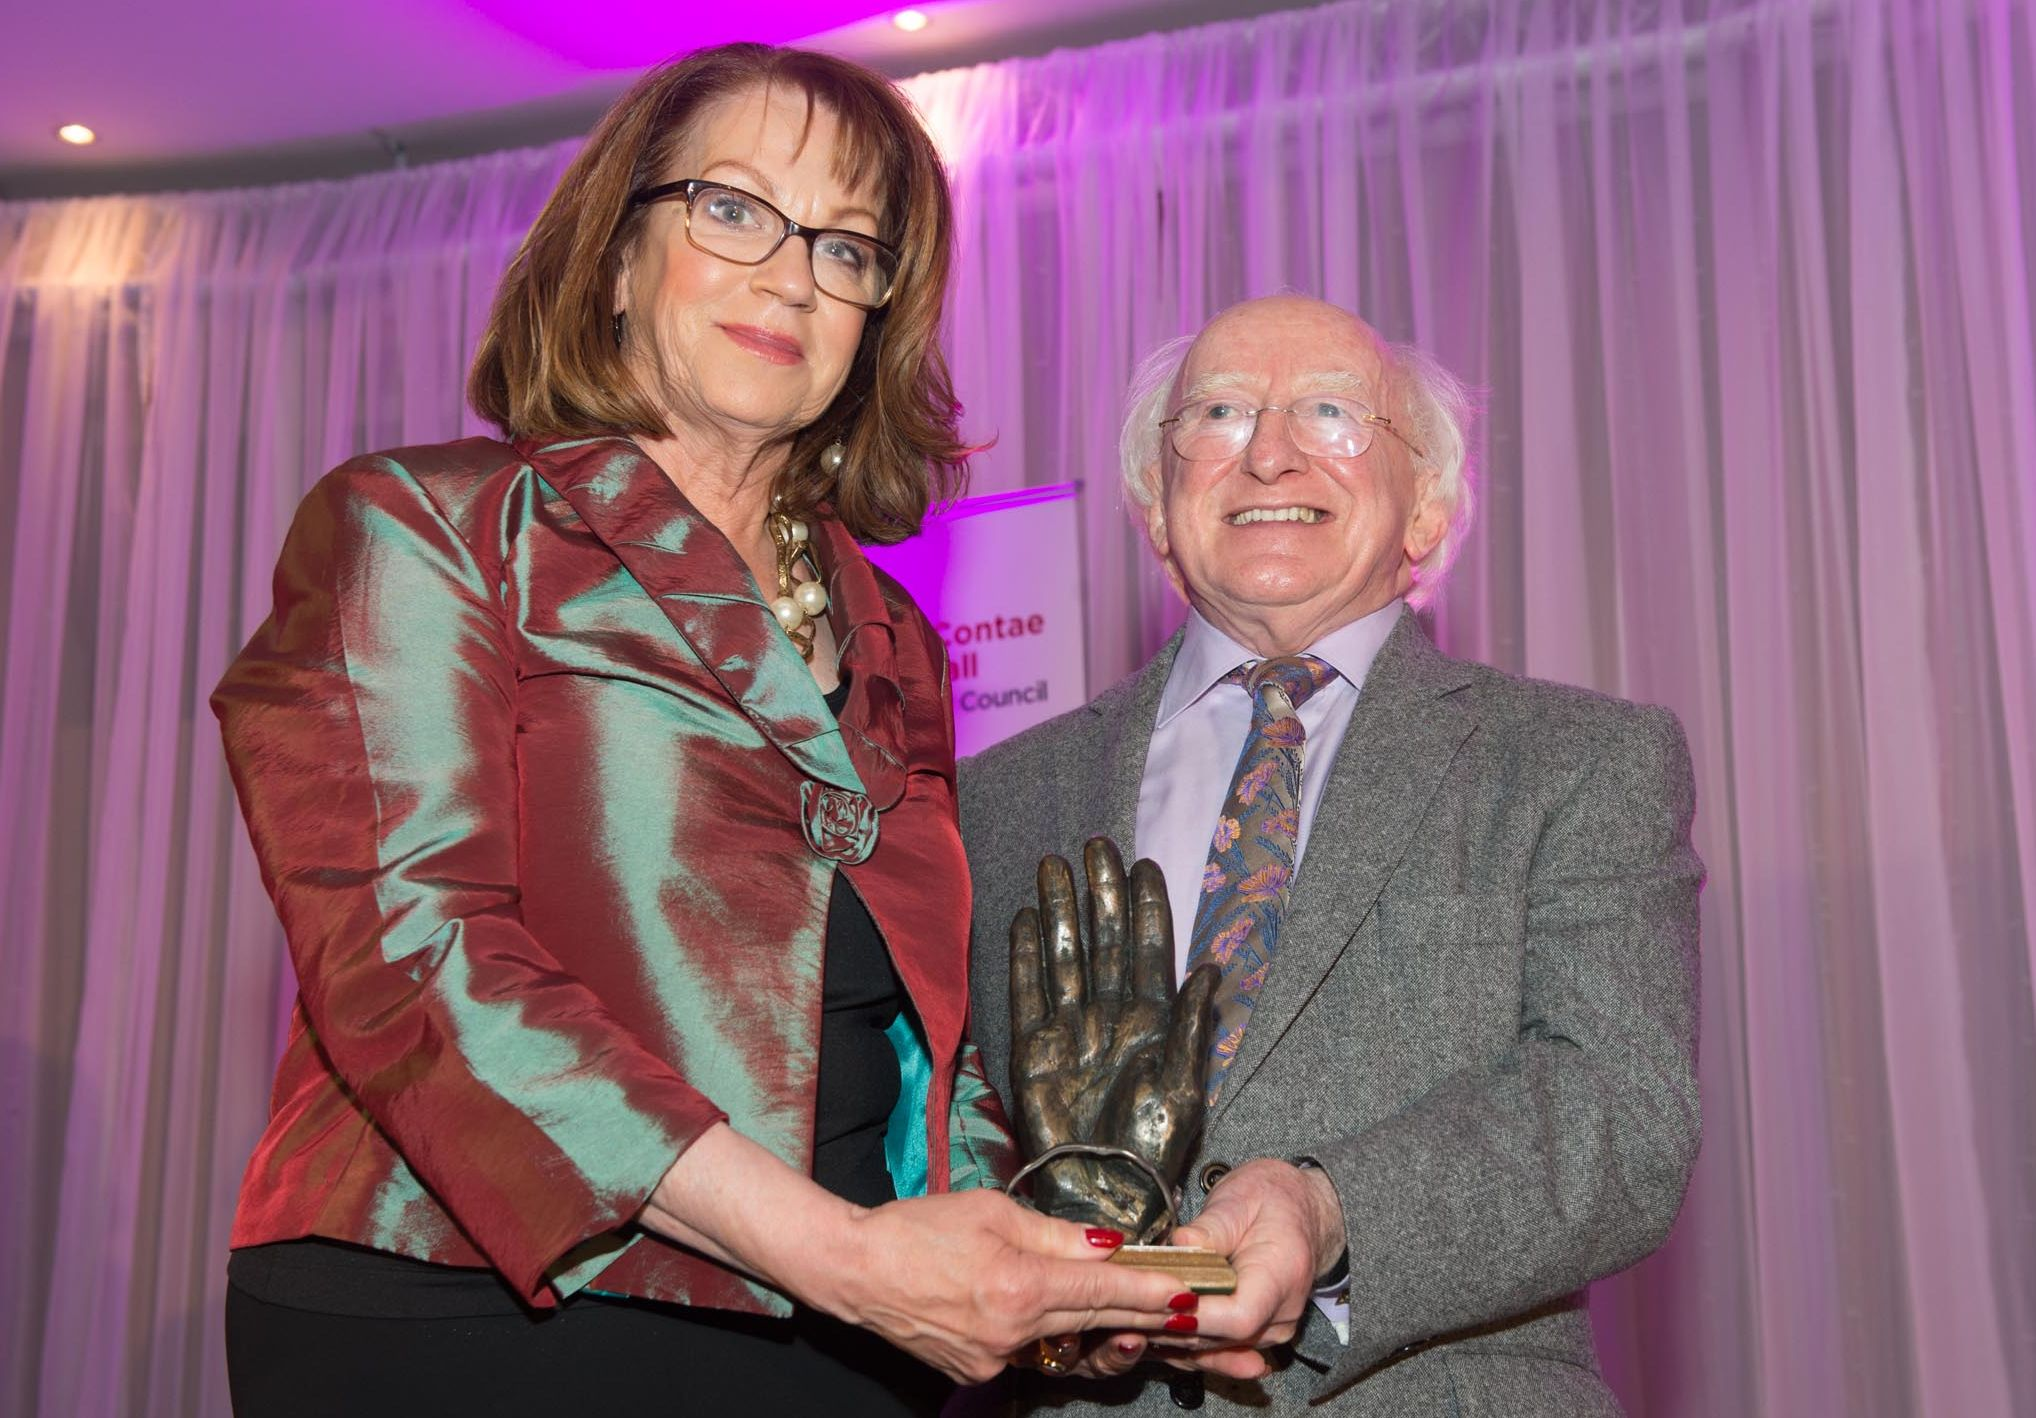 Therese Murray receiving the Tip O' Neill Irish Diaspora Award from President Michael D. Higgins